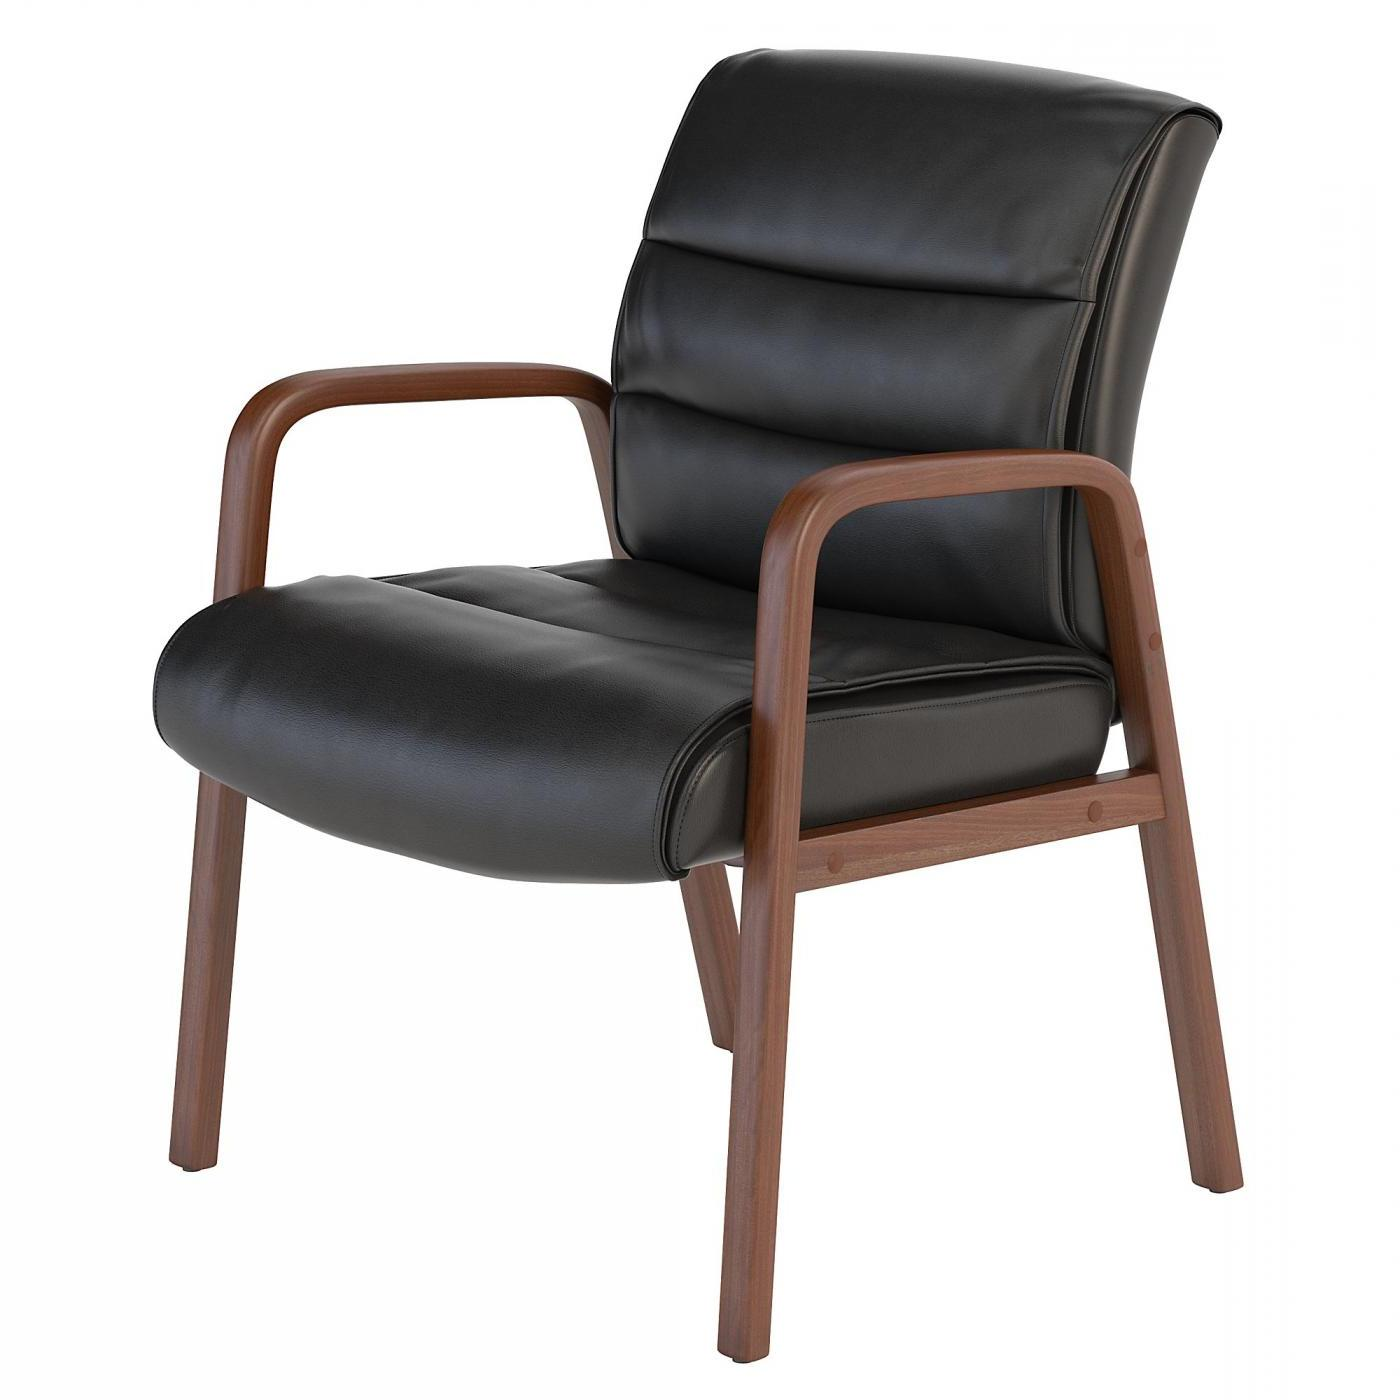 <font color=#c60><b>BUSH BUSINESS FURNITURE SOFT SENSE LEATHER GUEST CHAIR WITH WOOD ARMS. FREE SHIPPING</font></b> </font></b></font></b>